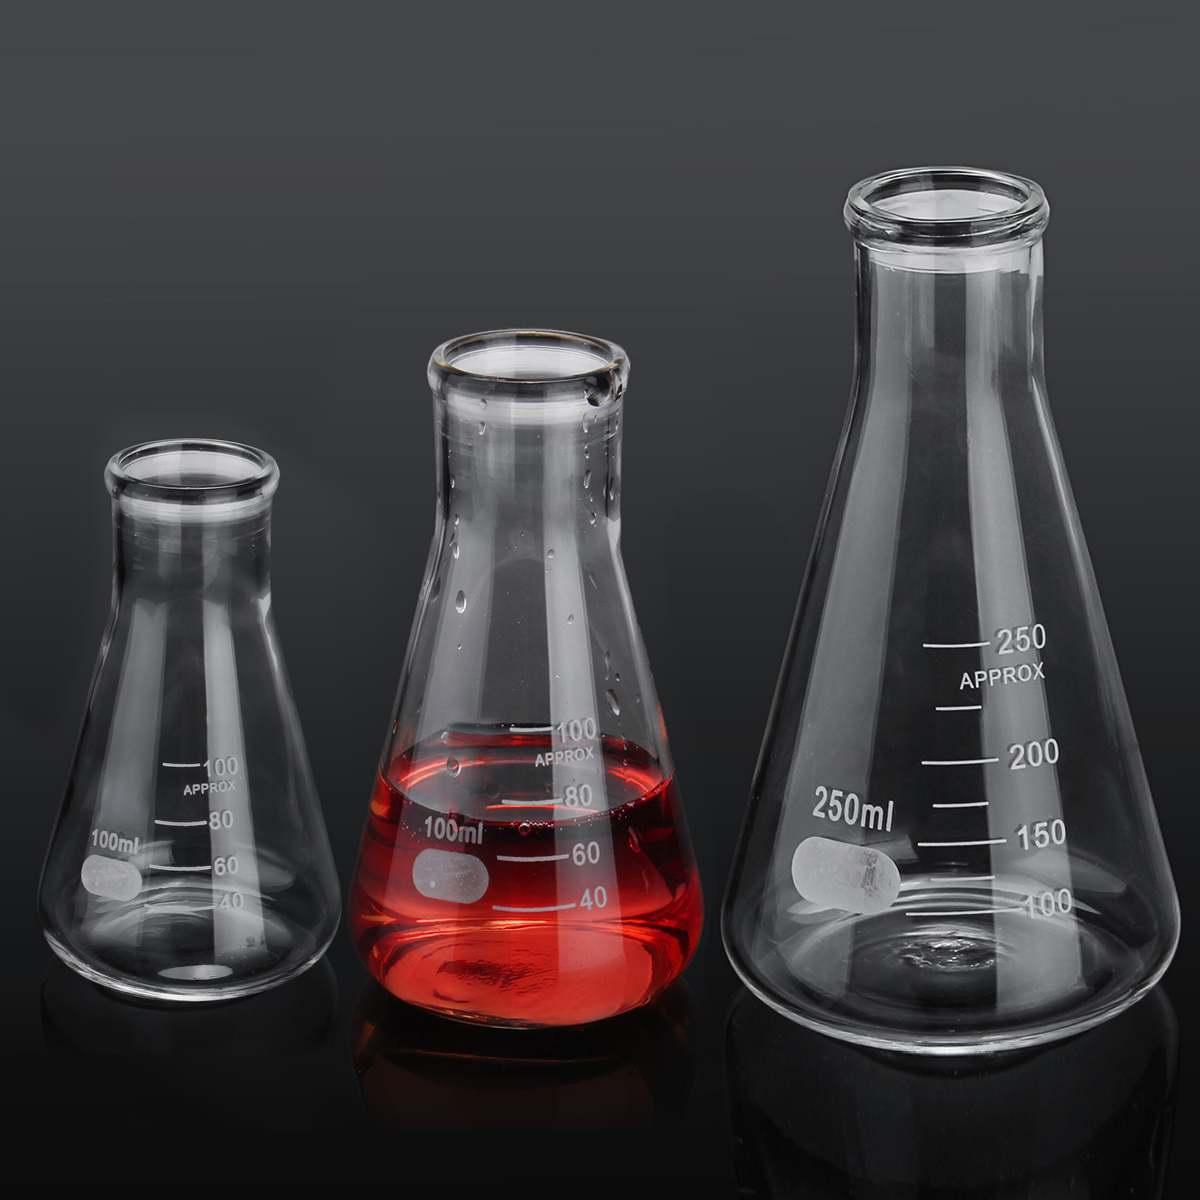 5PCS Transparent Lab Conical Flask Glass Scientific Glass Erlenmeyer Flask Safe Glassware Laboratory School Research Supply